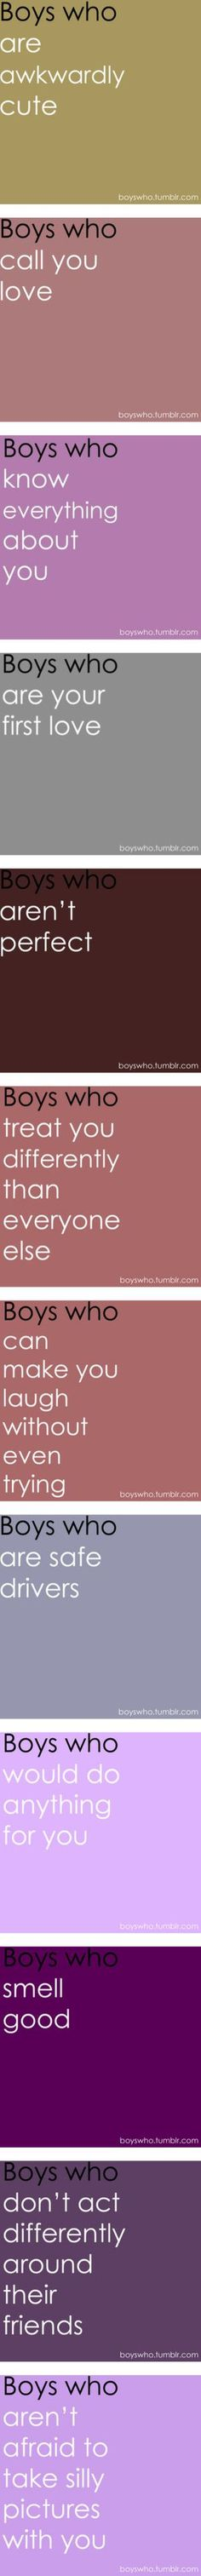 """boys who .. part 2 (:"" by princess-bree ❤ liked on Polyvore"